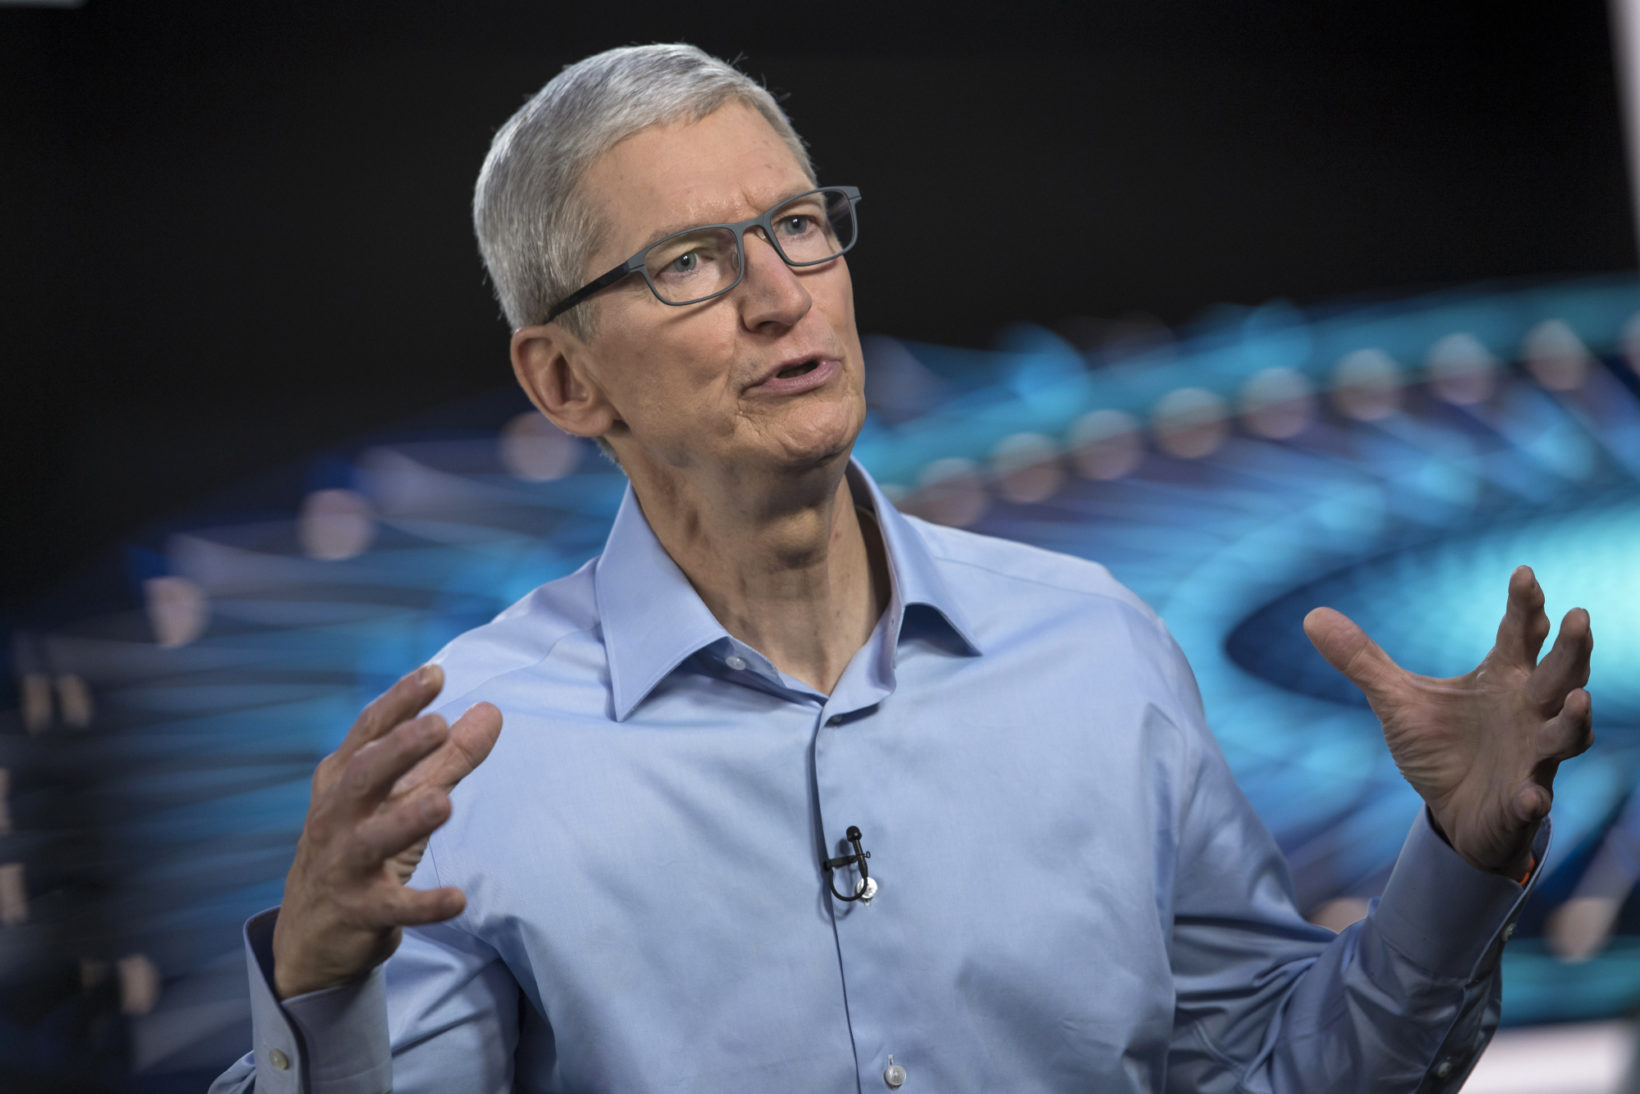 fabbriche apple in usa Tim Cook